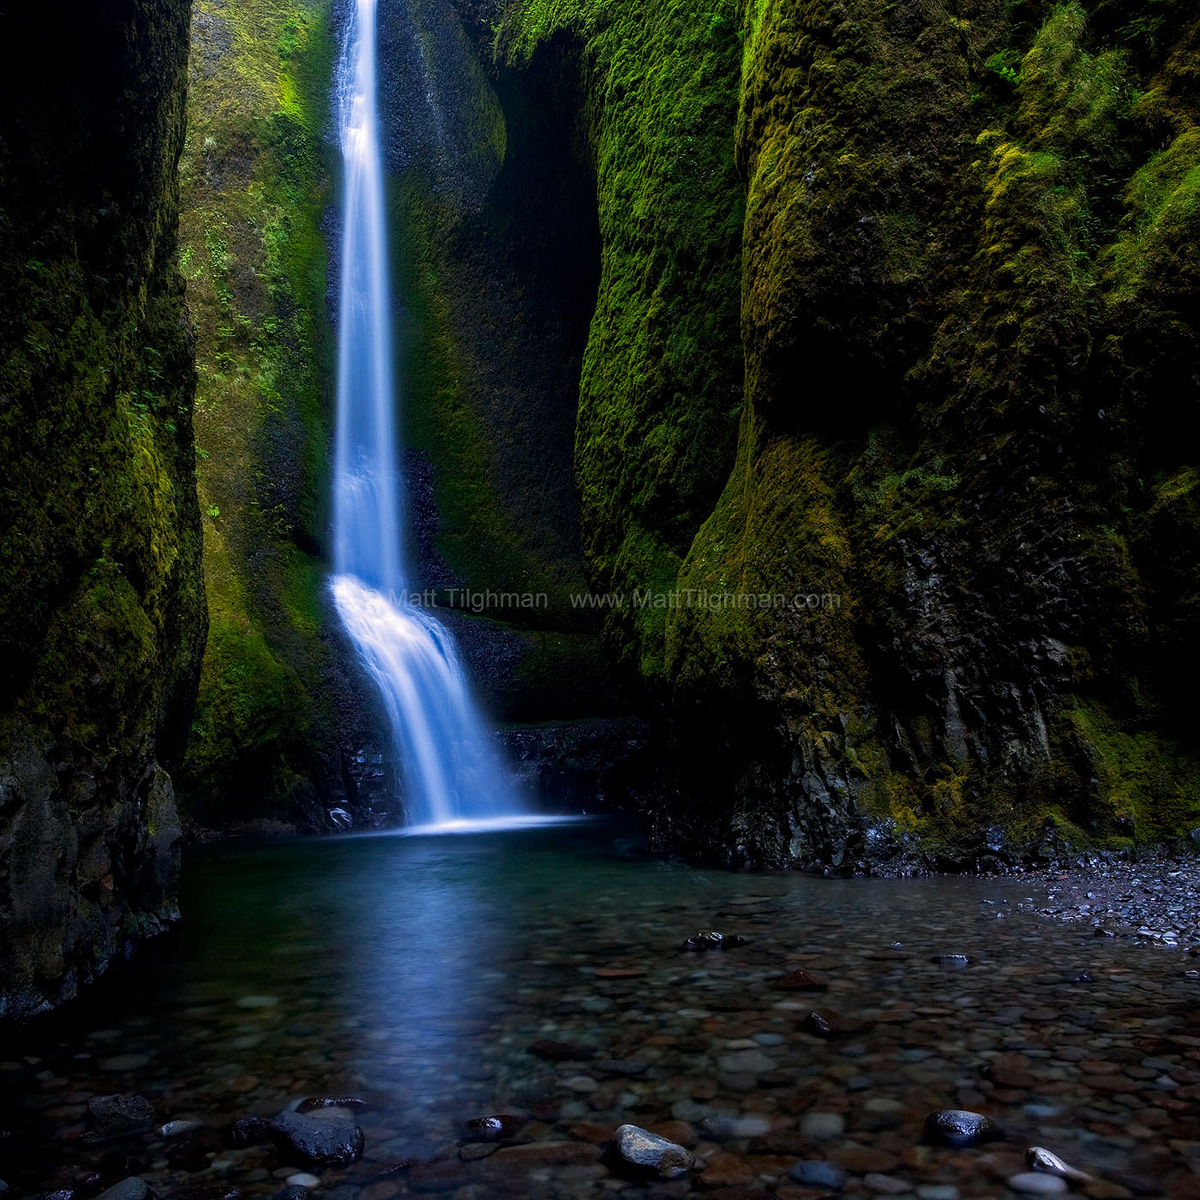 Fine art stock photograph of Lower Oneonta Falls, located in the Oneonta Gorge, part of Oregon's Columbia River Gorge. The beautiful canyon is a lush wonderland.